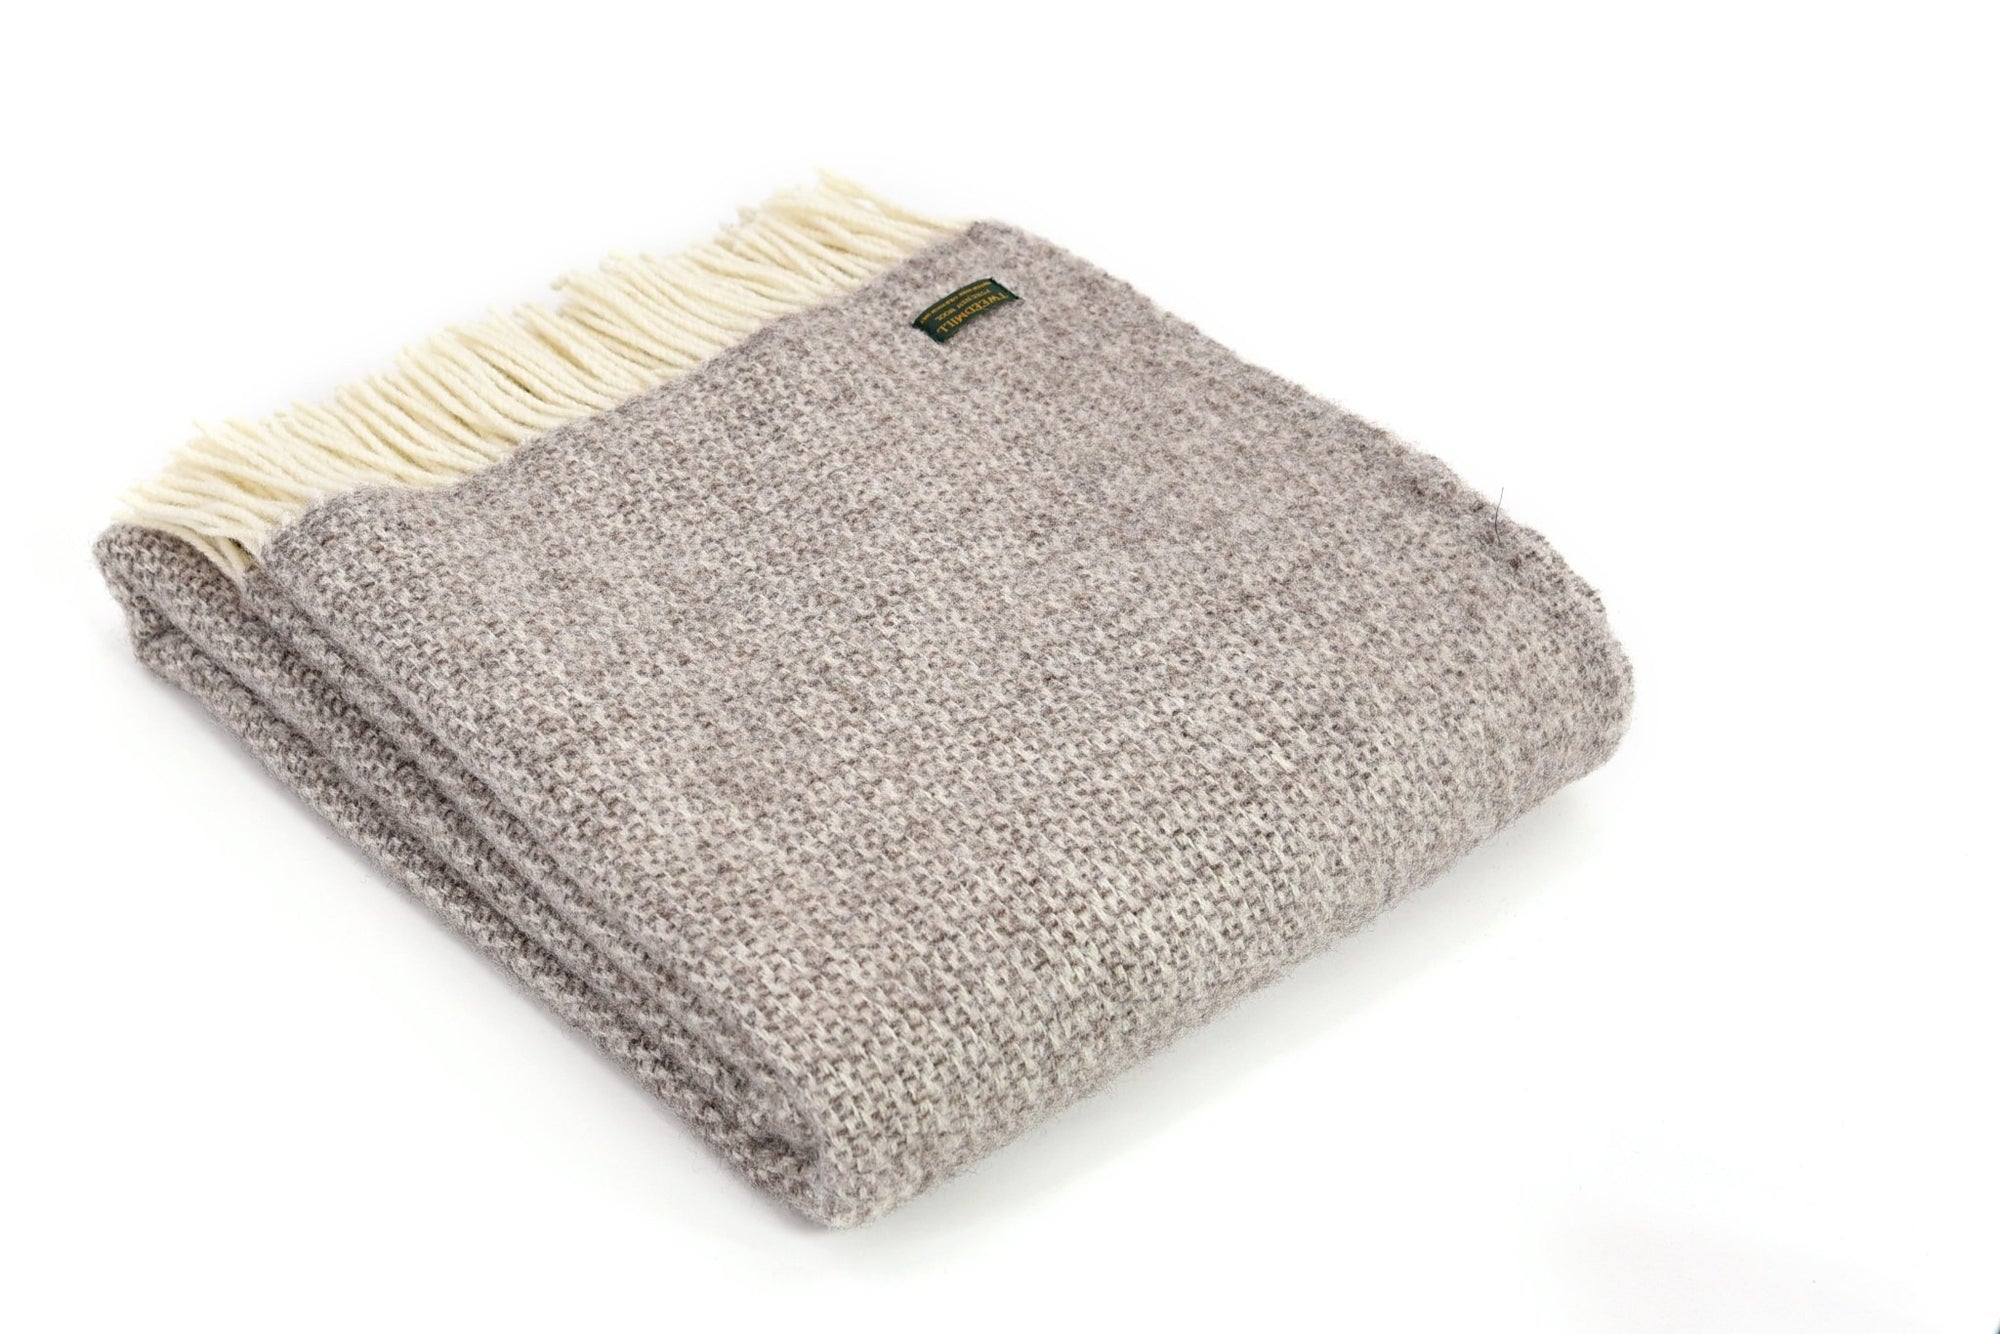 Tweedmill Illusion Natural pure wool throw - Urban Wool